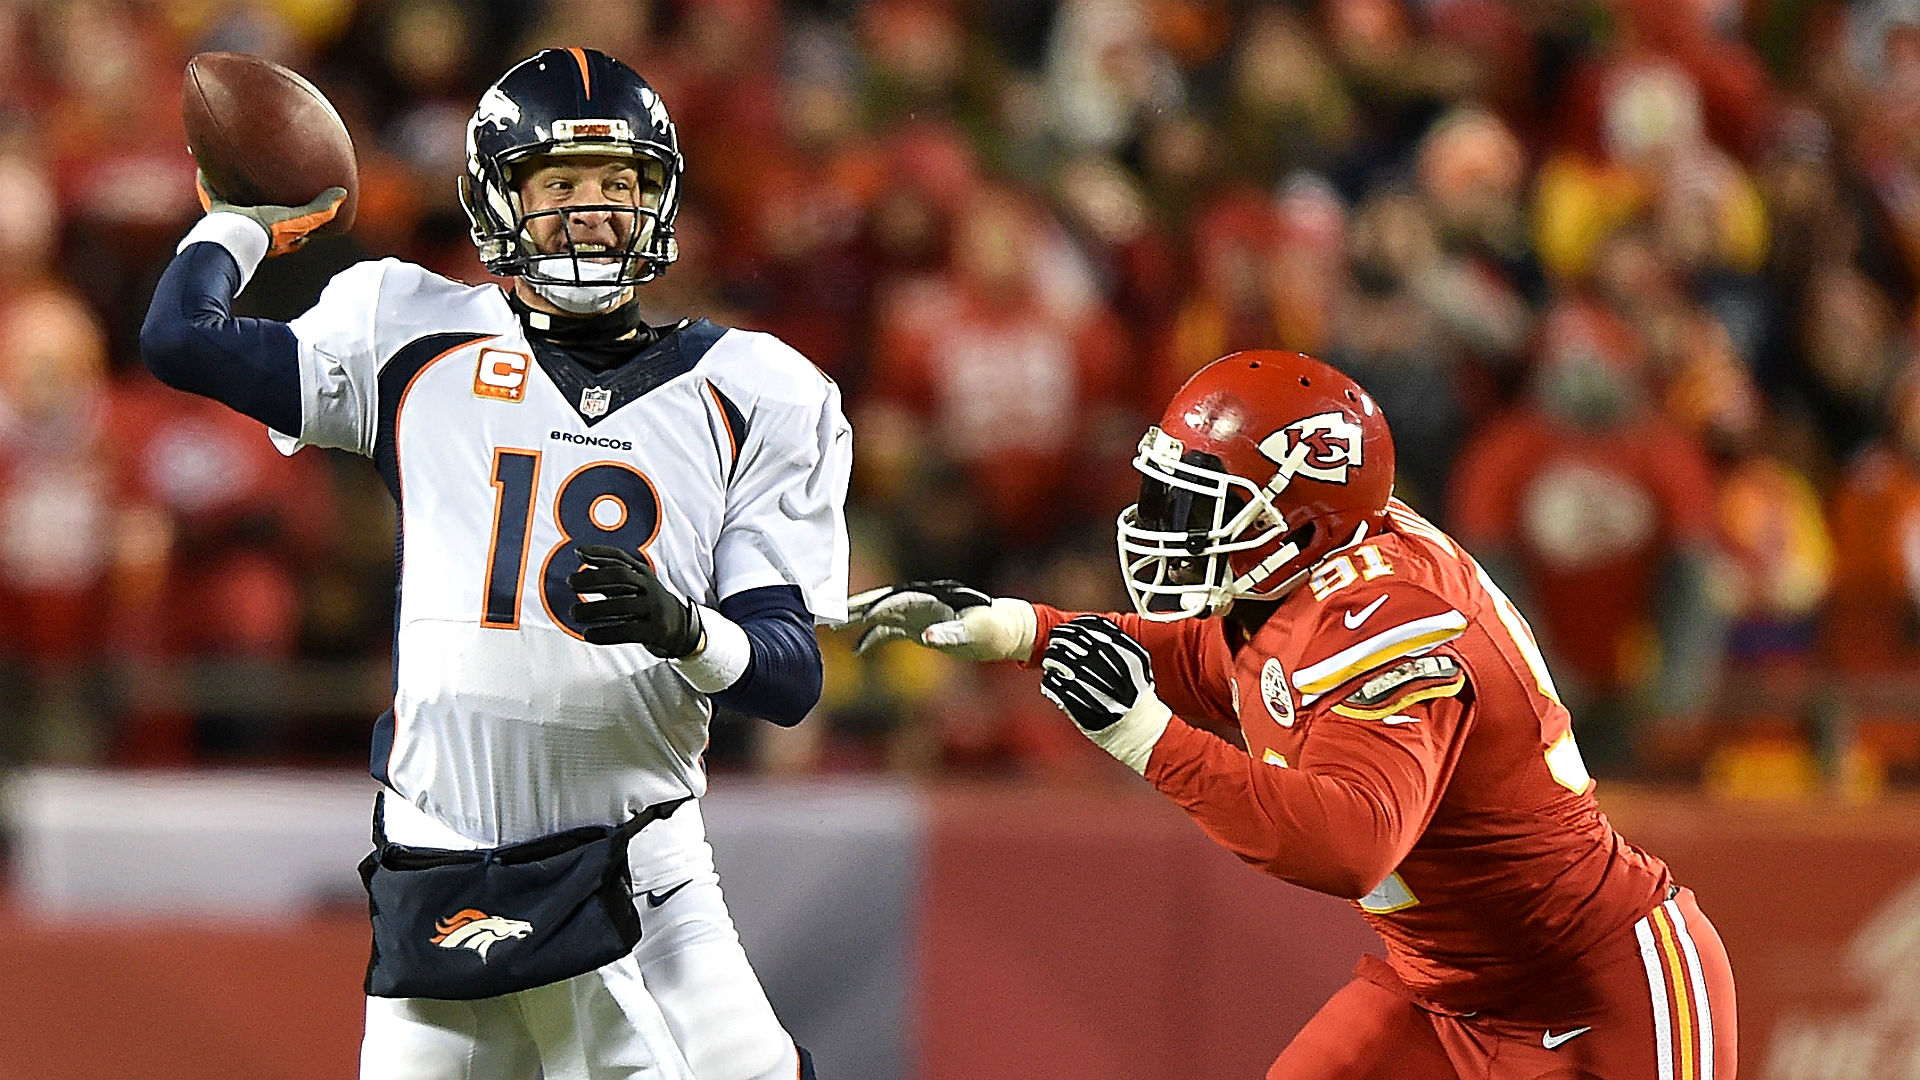 AFC West offseason betting snapshot - Chiefs, Chargers closing gap on Broncos